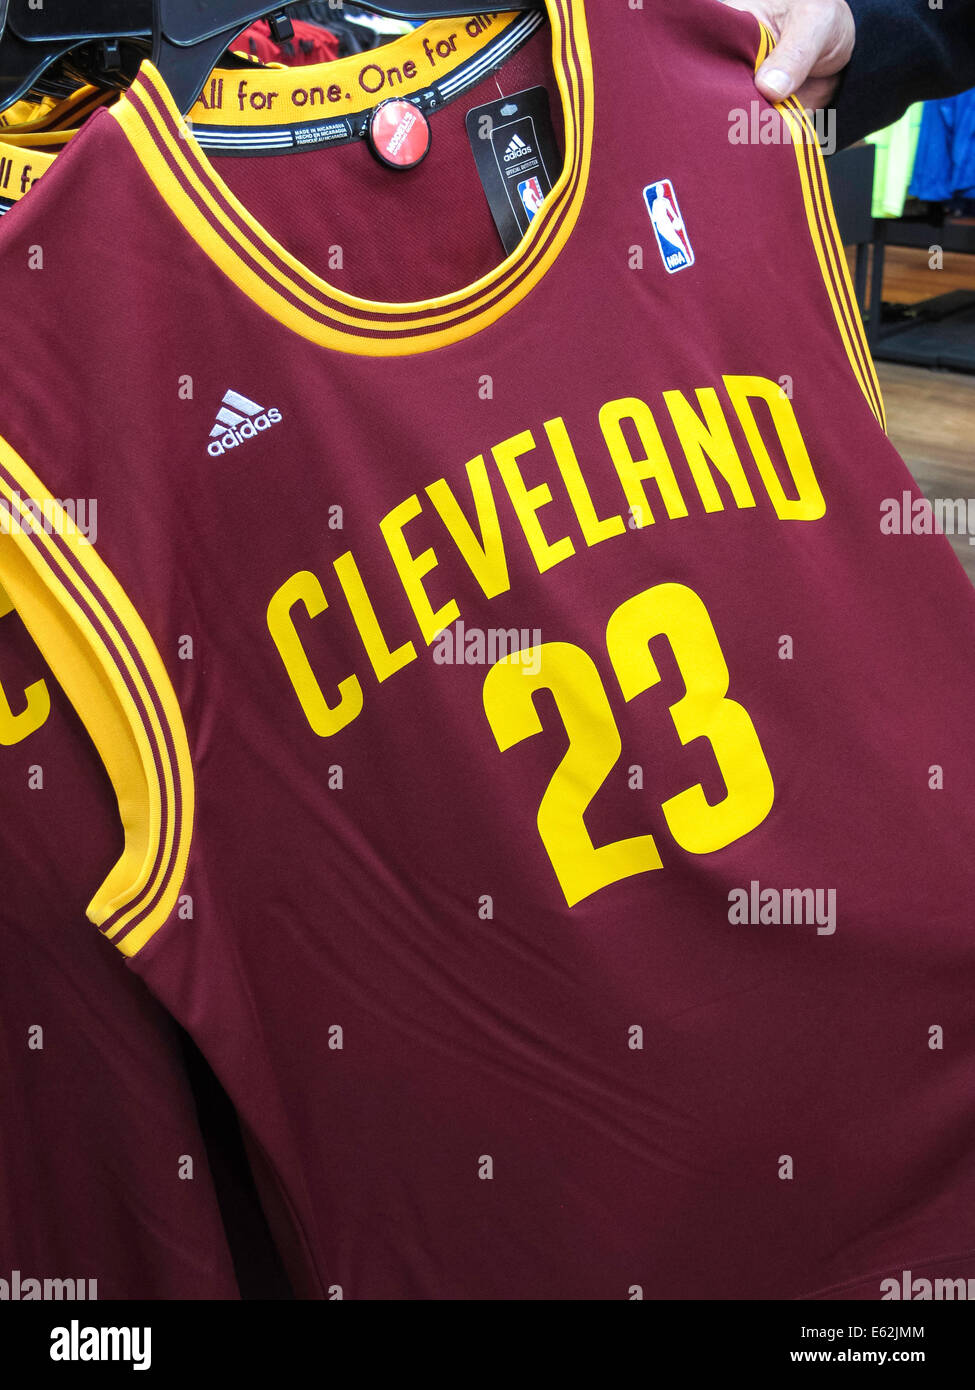 info for c8f76 bc6f7 LeBron James, Cleveland Cavs Game Jerseys, Modell's Sporting ...